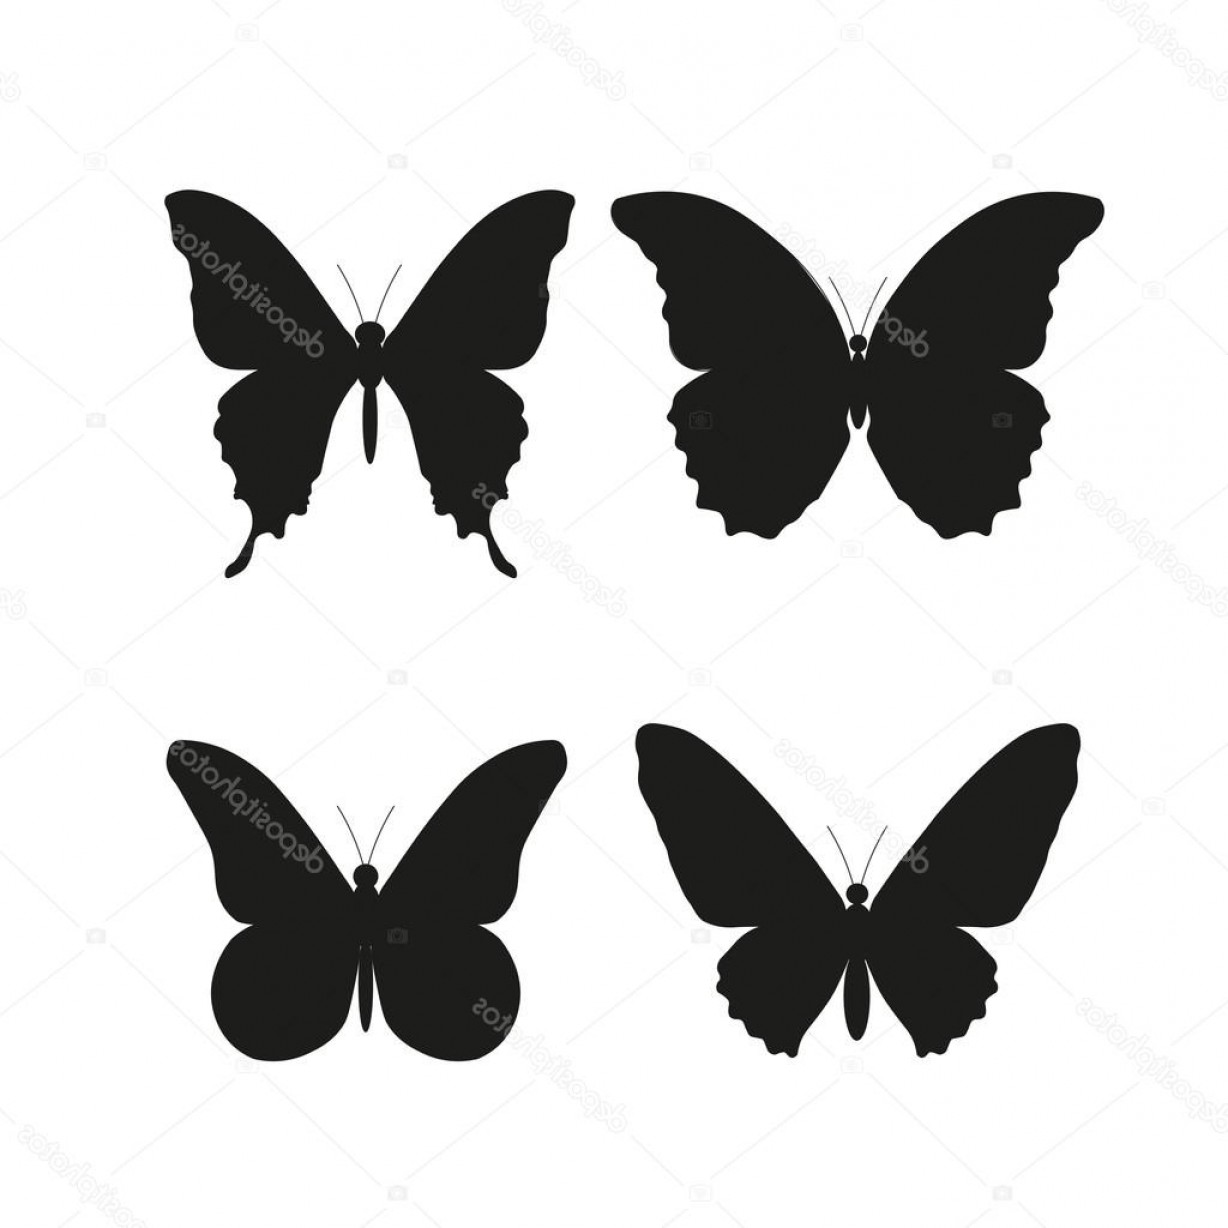 Butterly Vector: Stock Illustration Beautiful Silhouette Butterfly Vector Illustration